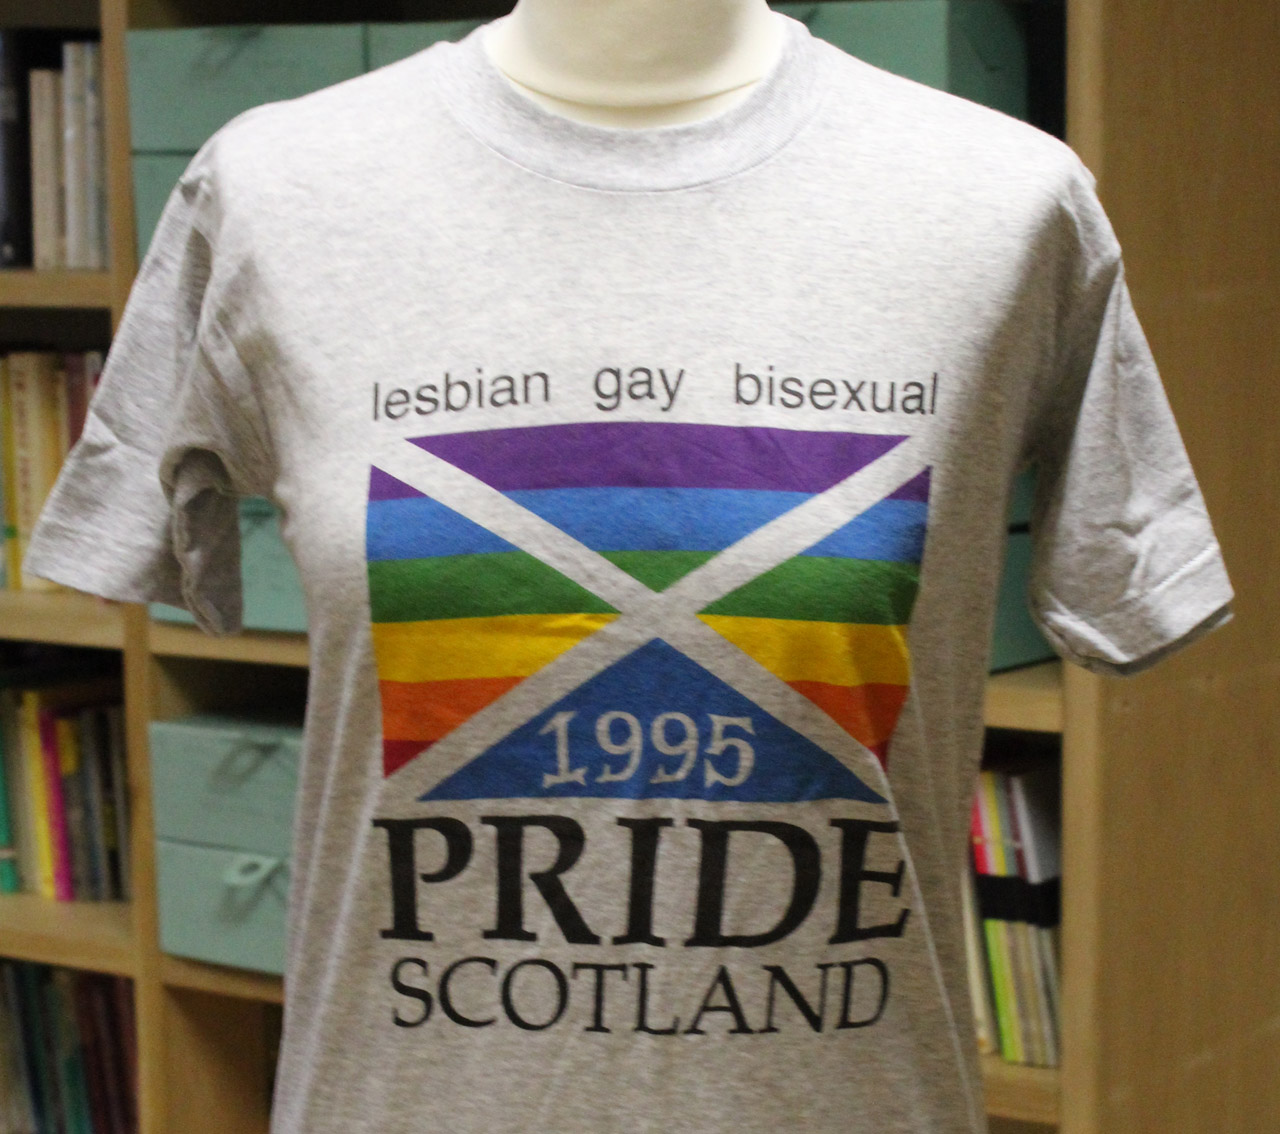 Pride Scotland T-shirt, unknown designer, 1995